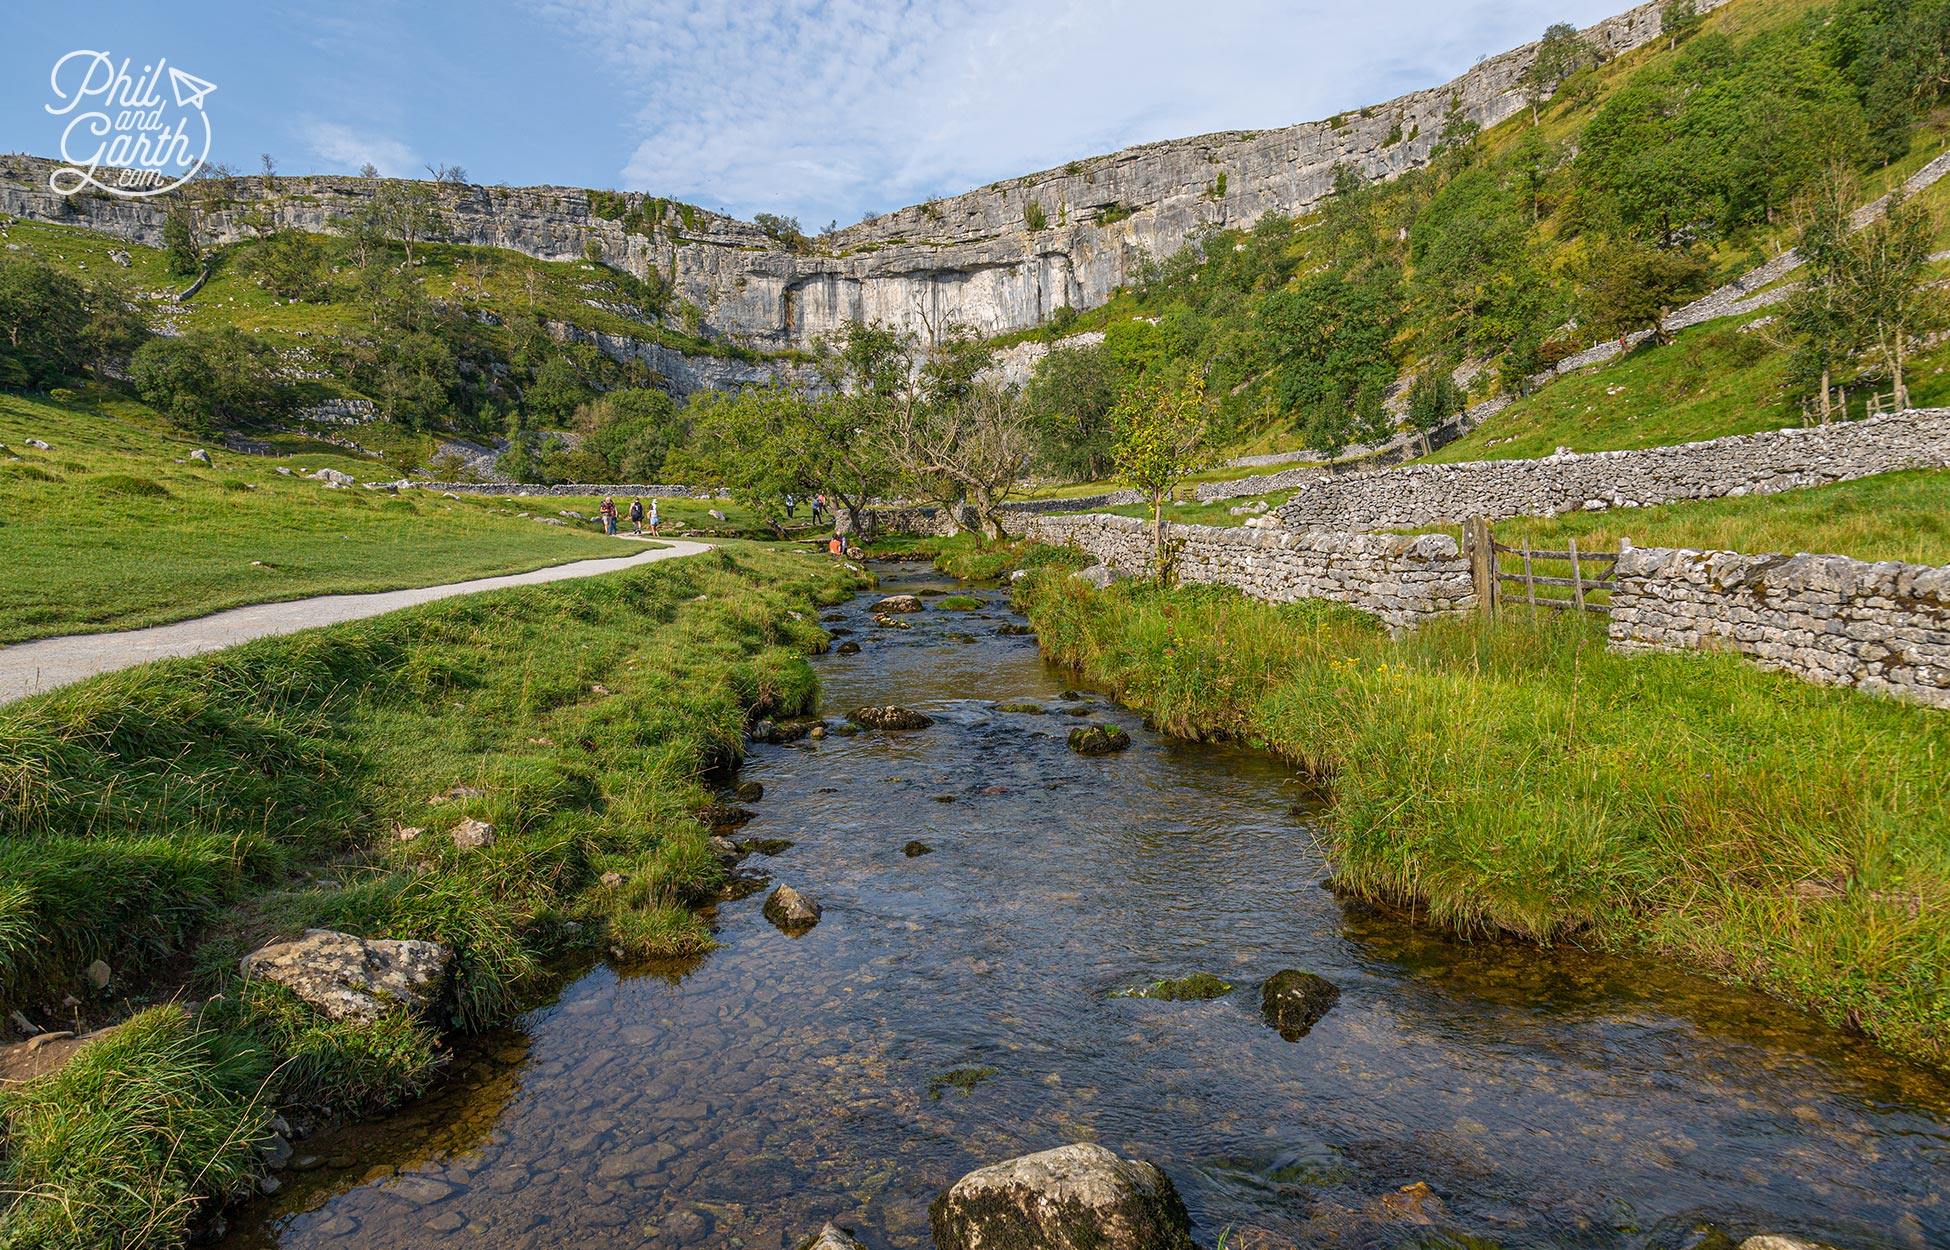 Its a gorgeous walk along the river to see the natural amphitheatre of Malham Cove